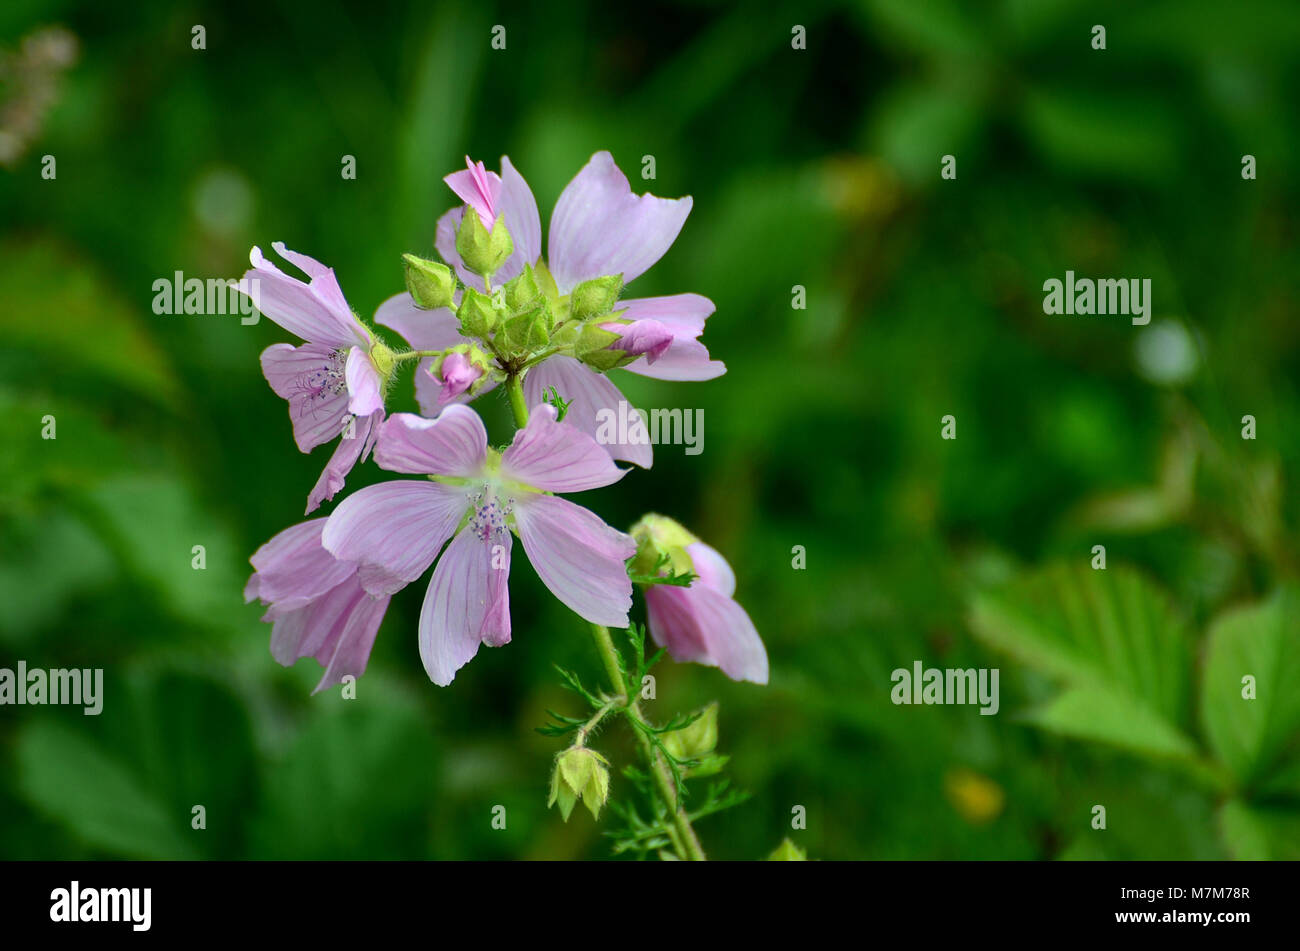 Mallow plant pink flowers uk wild flower stock photo 176851047 mallow plant pink flowers uk wild flower mightylinksfo